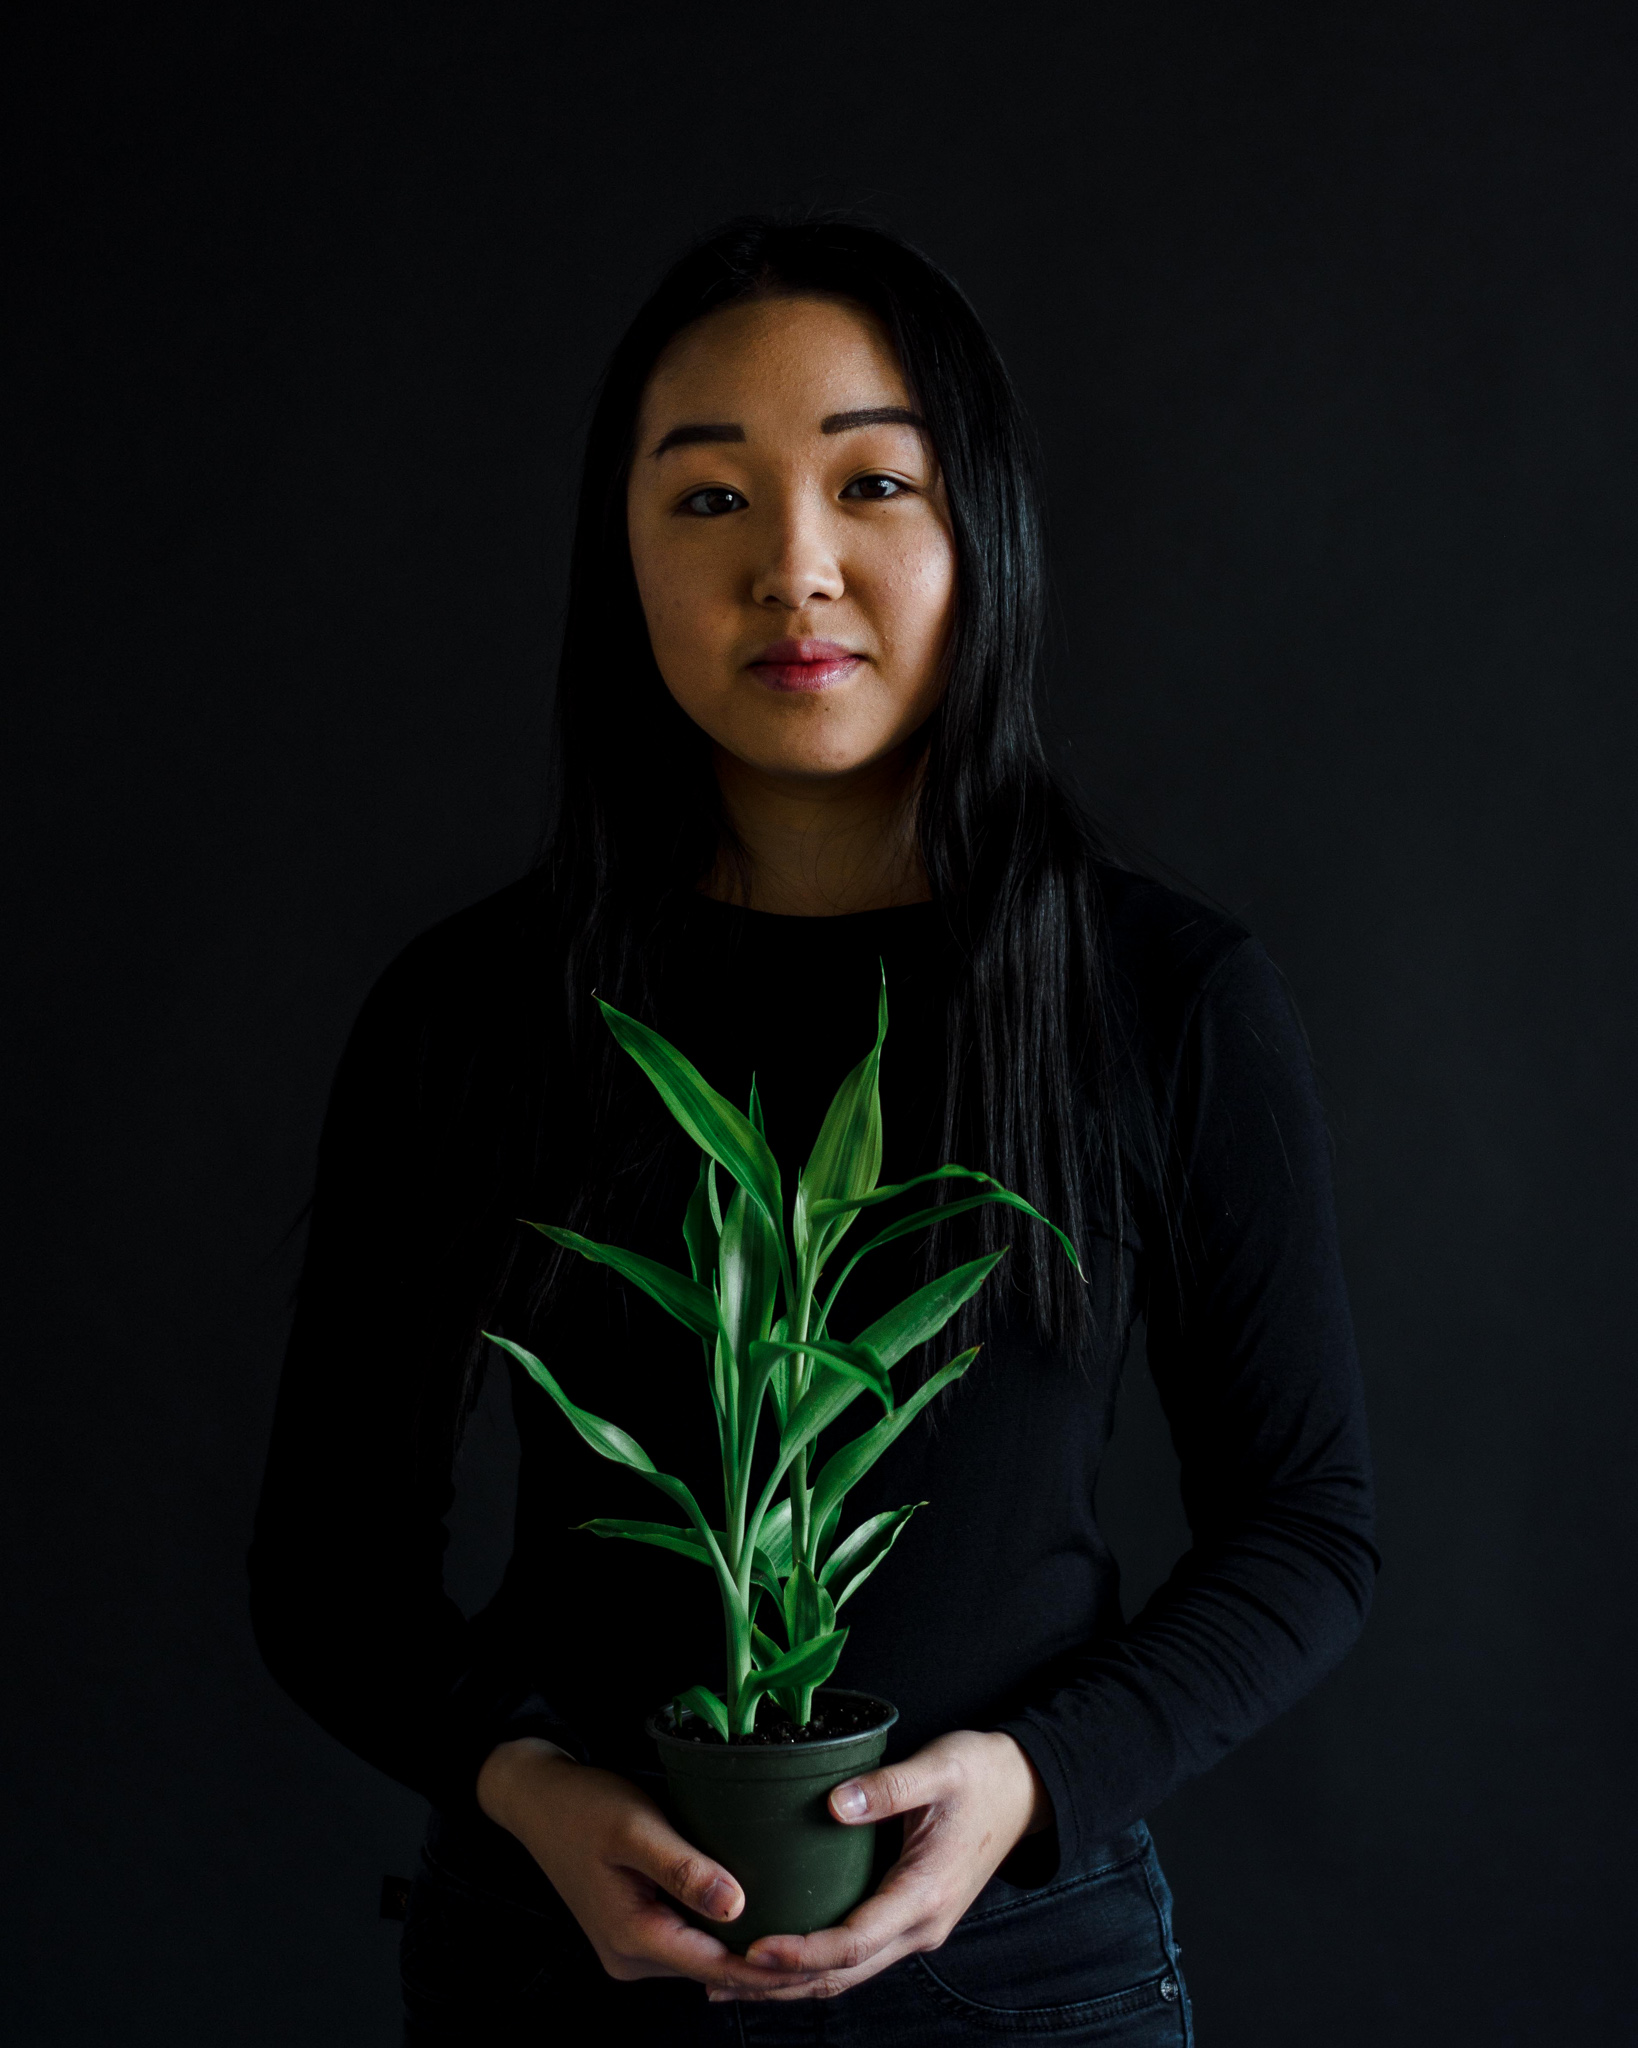 Portrait of Jess Lin holding a plant, in front of a dark field